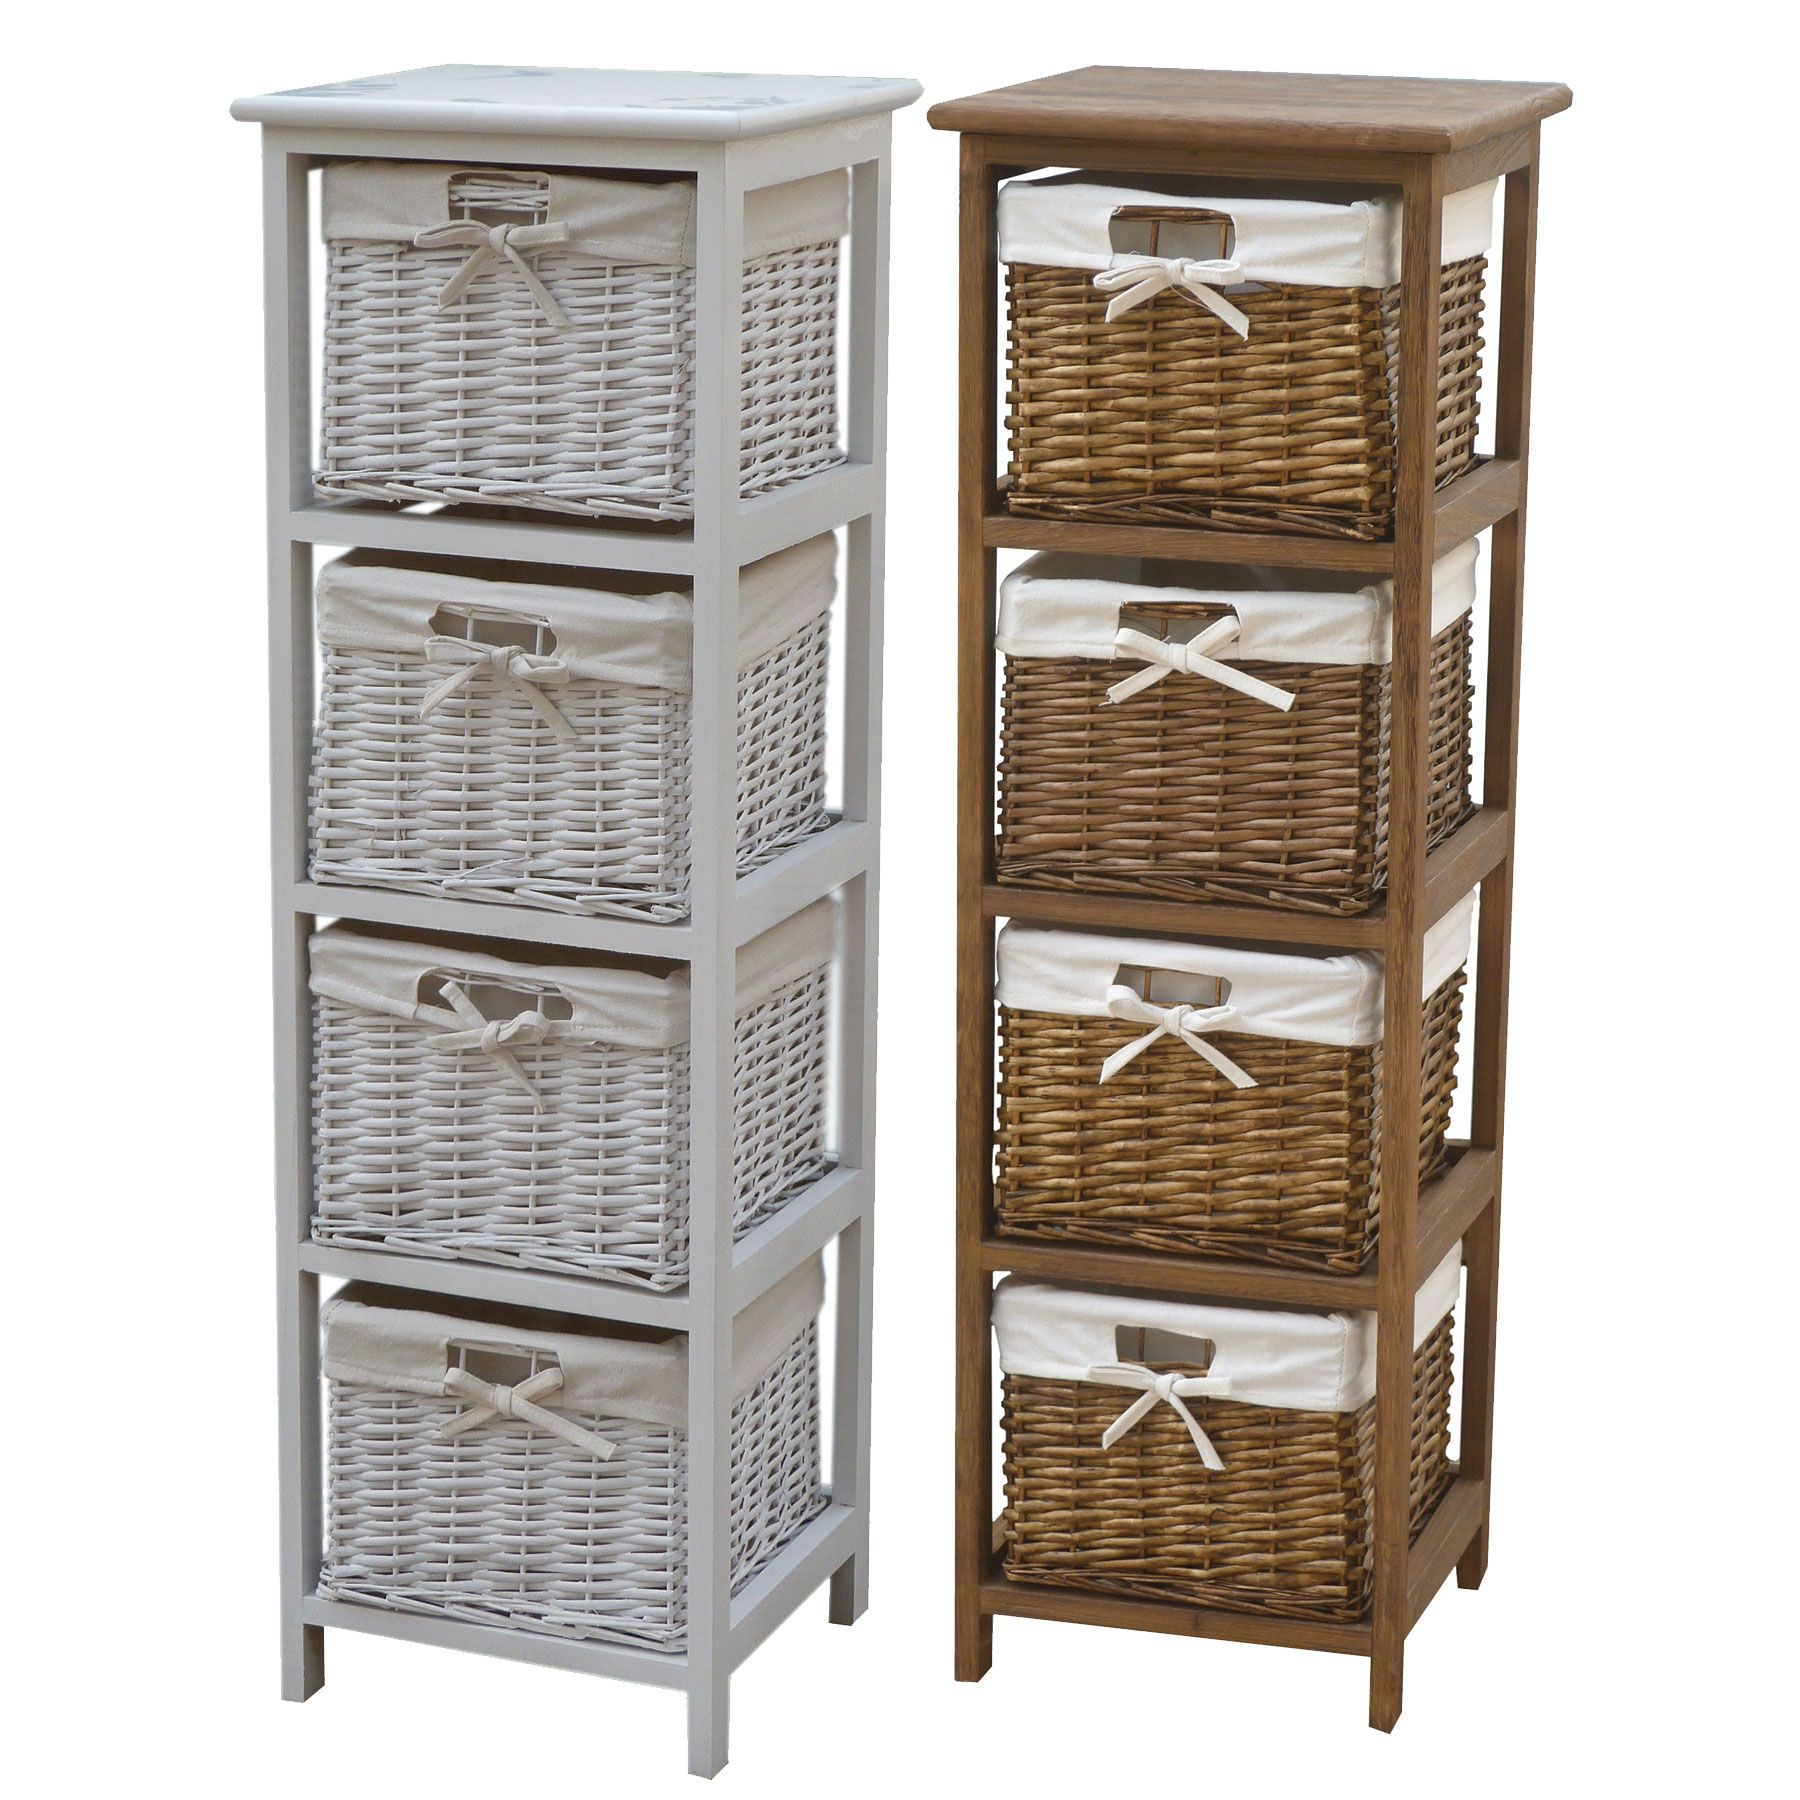 Wicker Baskets Are A Great Storage Solution. And Combined With These Wooden  Storage Tallboys They Will Make Your Home Look Tidier, Cosier And Warmer.